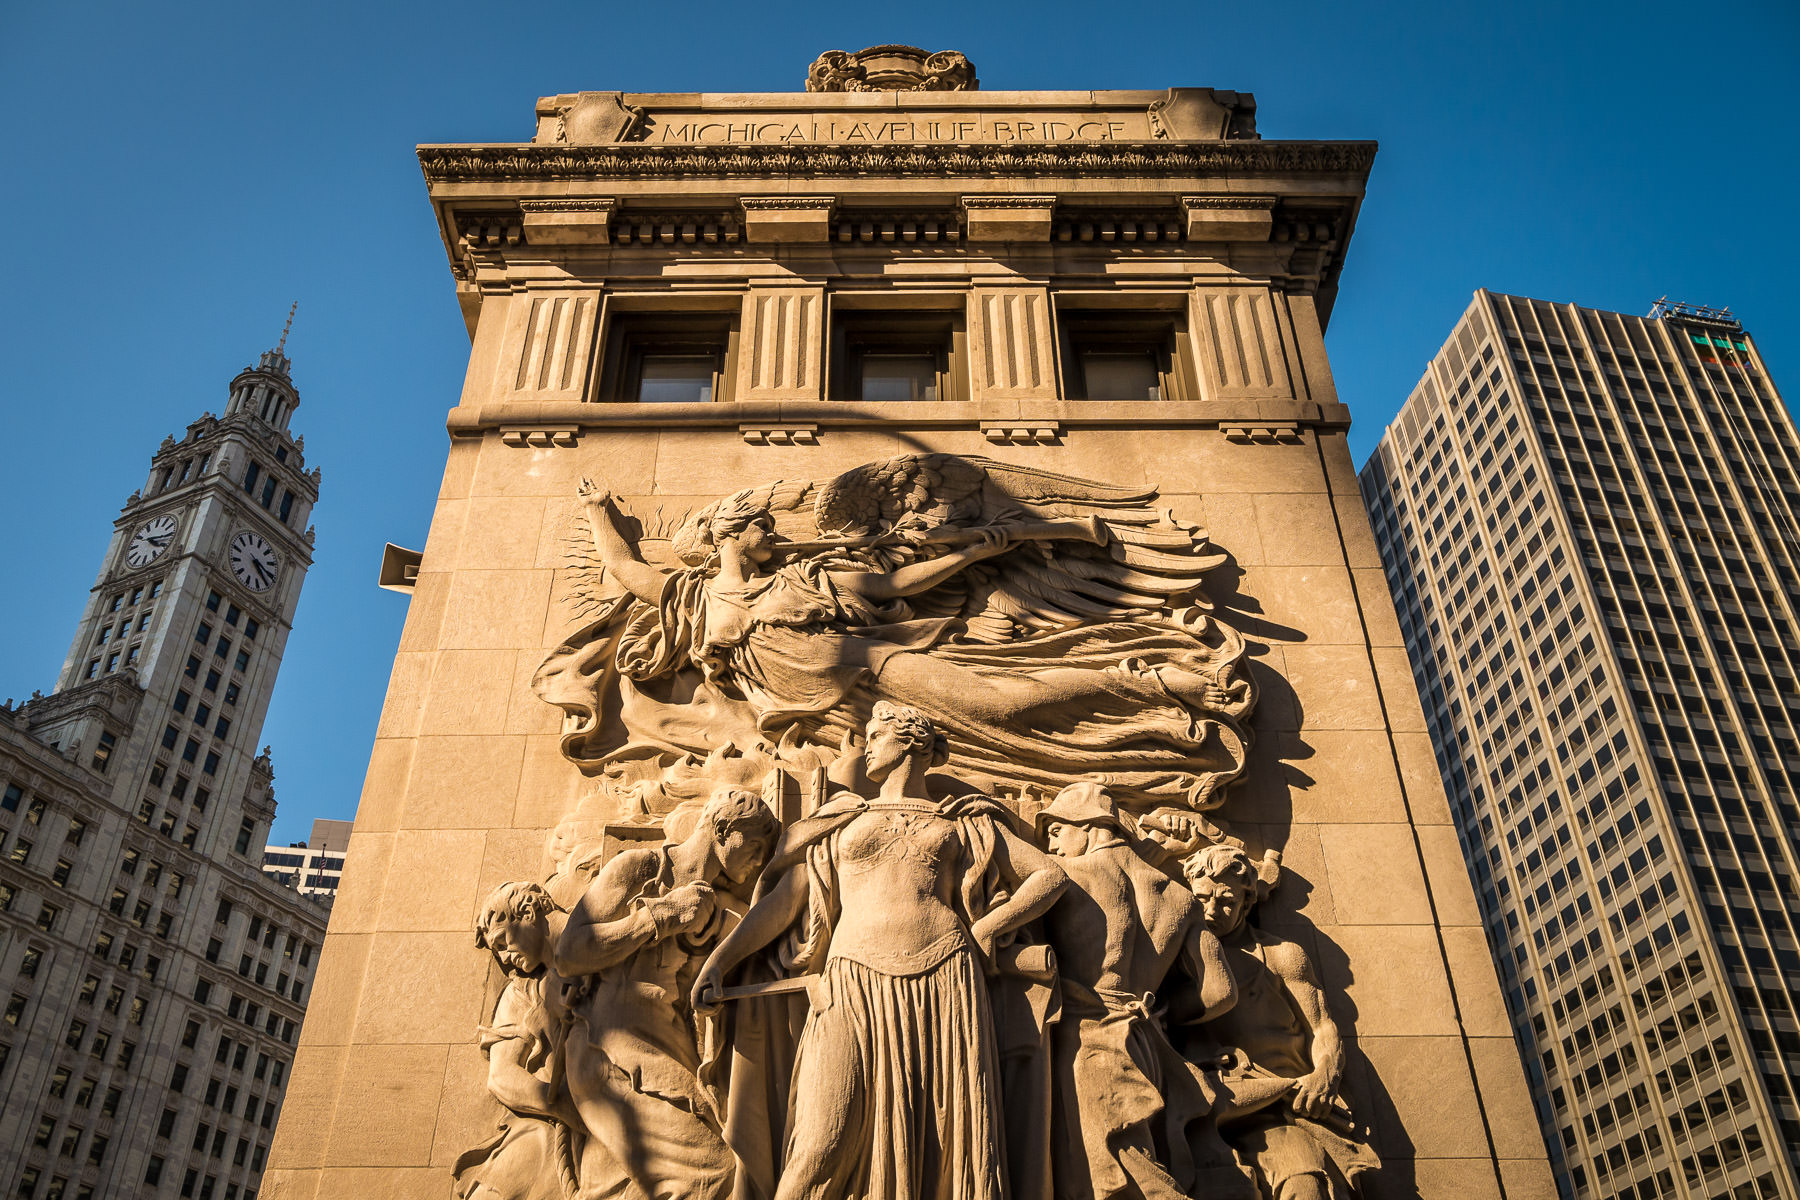 One of four sculptures by James Earle Fraser on the bridgehouses of Chicago's Michigan Avenue Bridge (or DuSable Bridge); this one is entitled Regeneration and depicts the reconstruction of the city after the Great Fire of 1871.